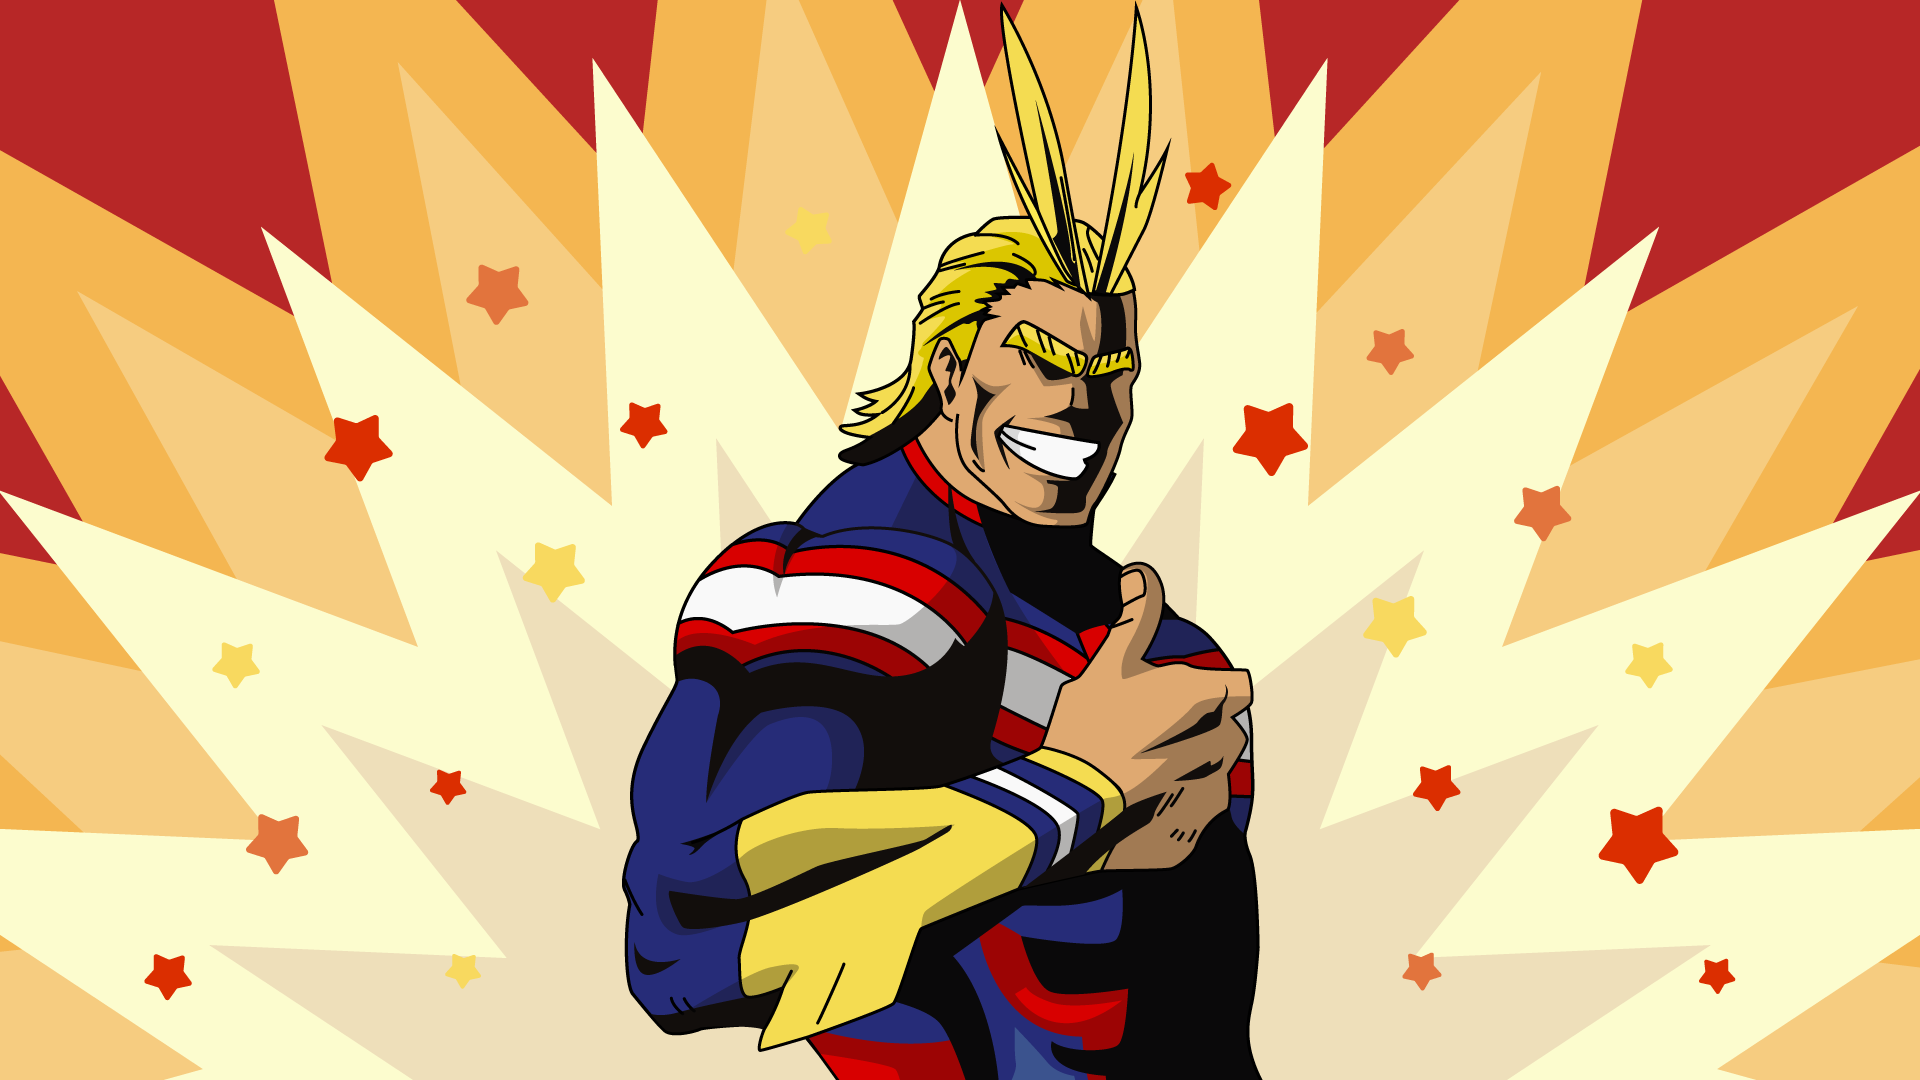 All Might Wallpapers - Top Free All Might Backgrounds ...